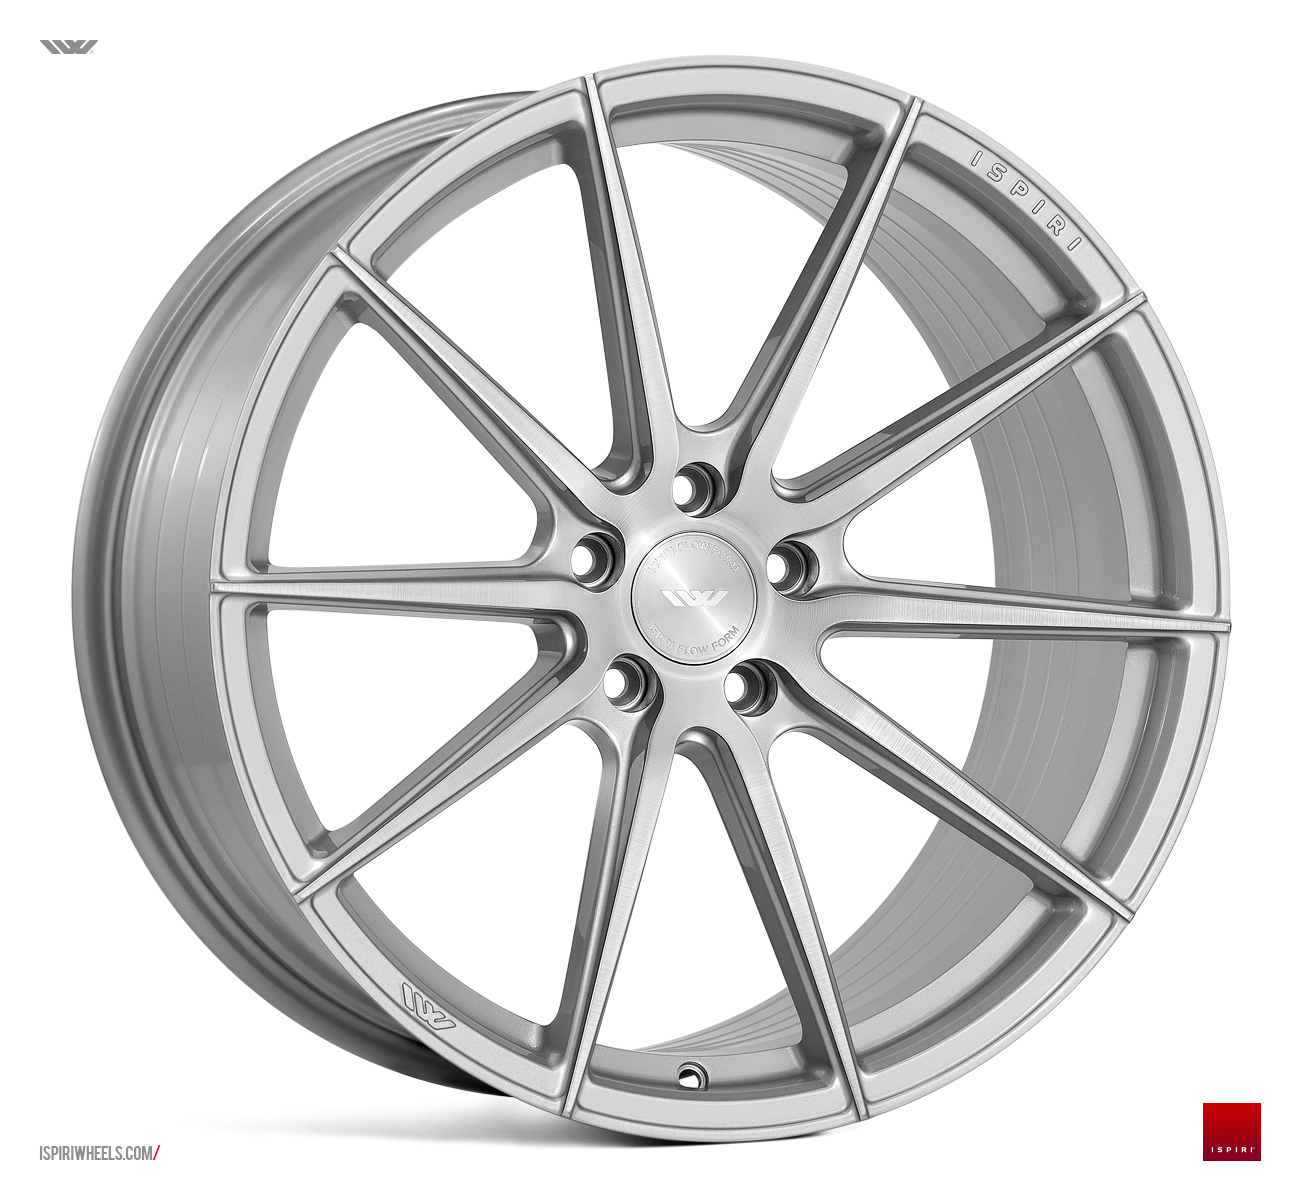 "NEW 20"" ISPIRI FFR1 MULTI-SPOKE ALLOY WHEELS IN SILVER WITH BRUSHED POLISH FACE, DEEPER CONCAVE 10.5"" REARS"